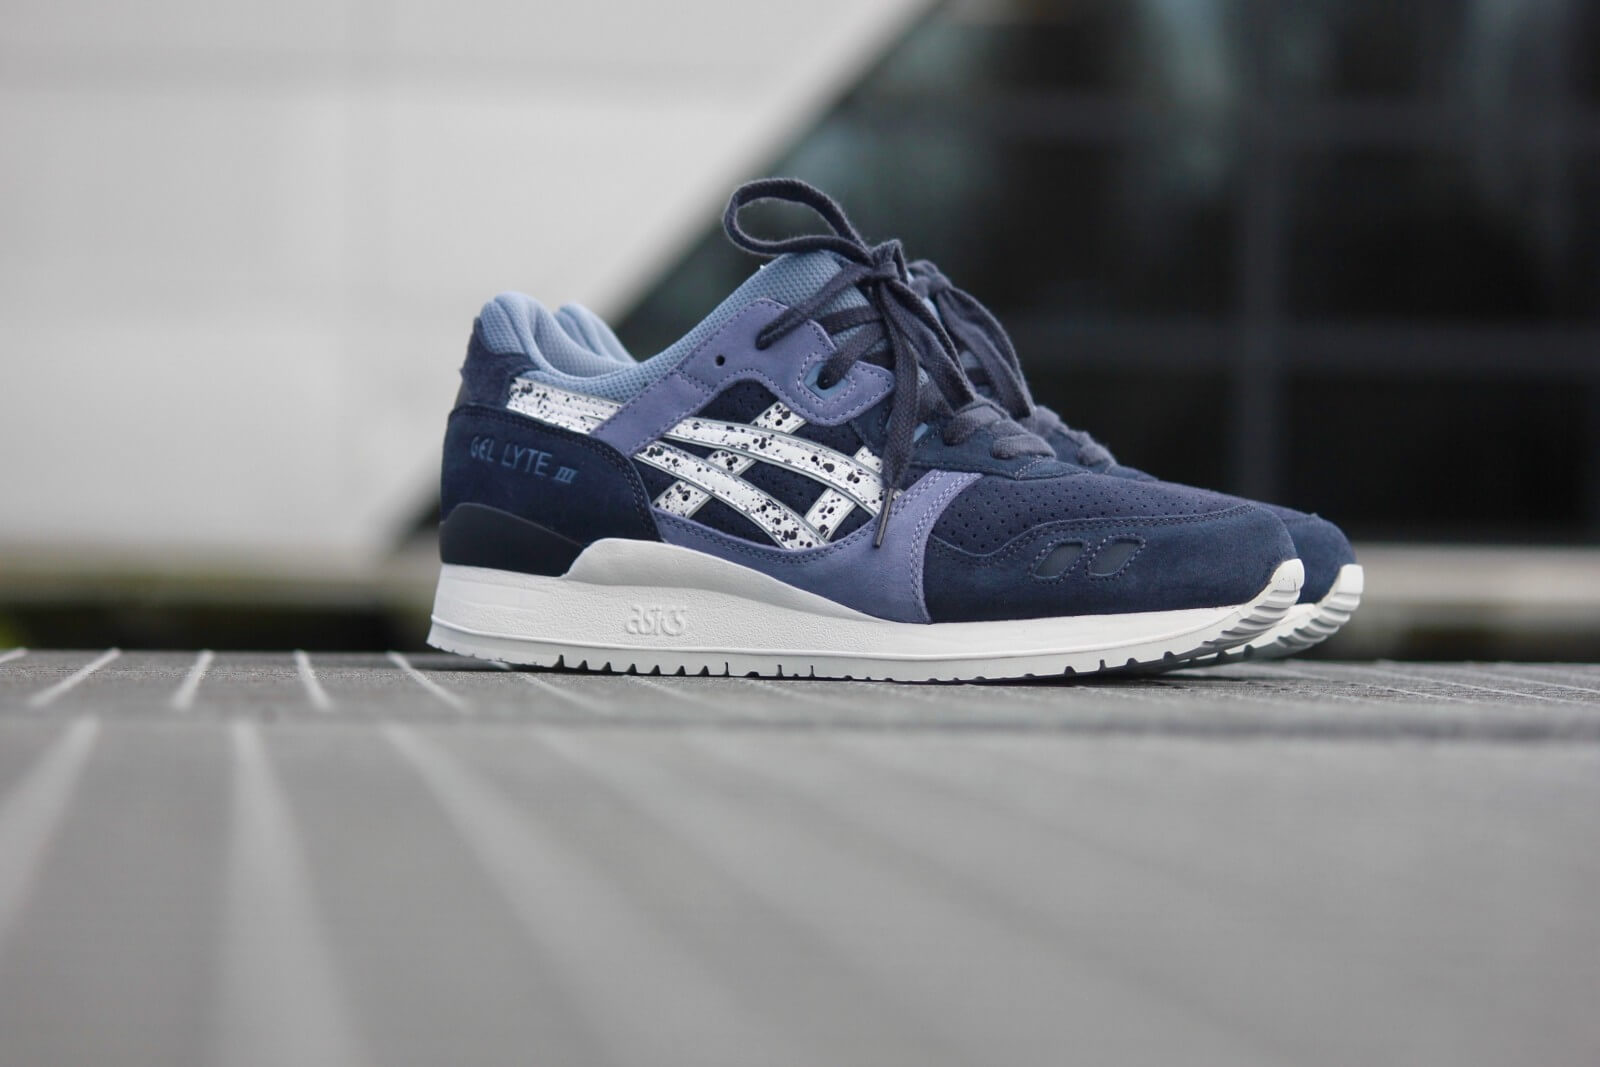 Asics Gel Lyte III Indian Ink/White - H6B2L-5001